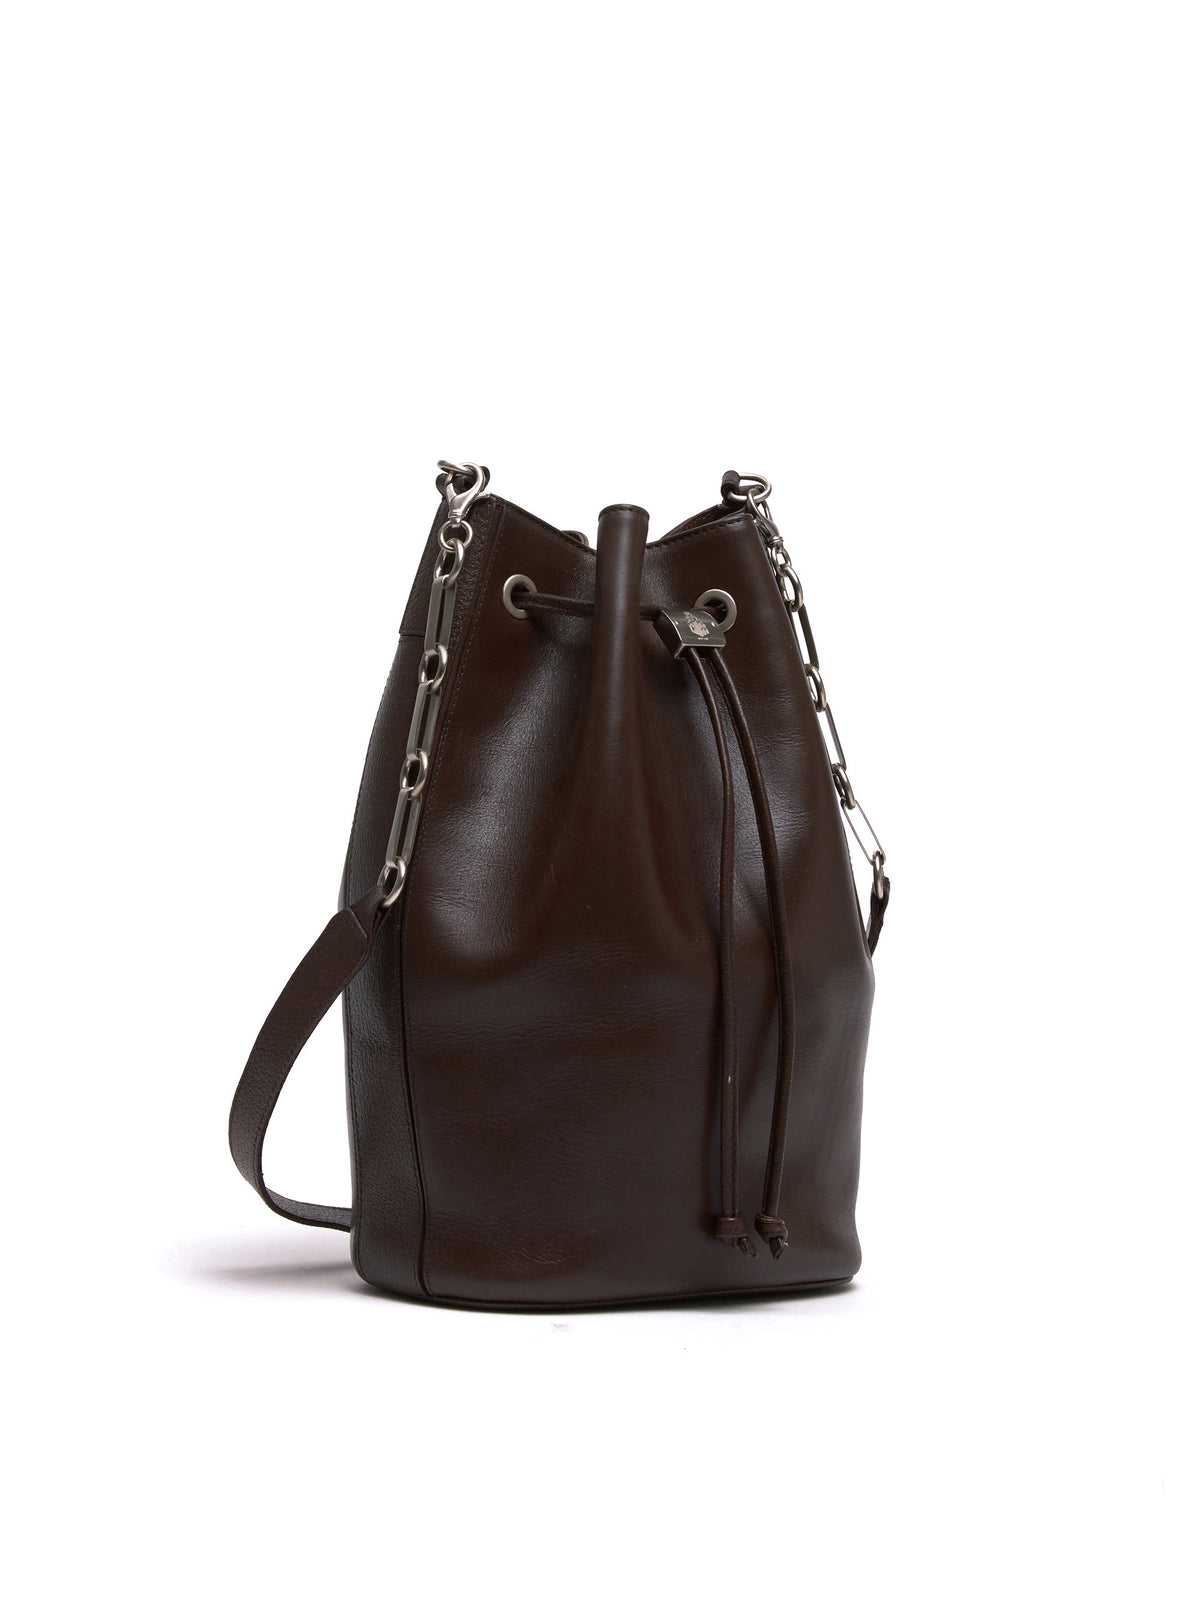 Mark Cross Vintage Leather Bucket Bag Chocolate Side